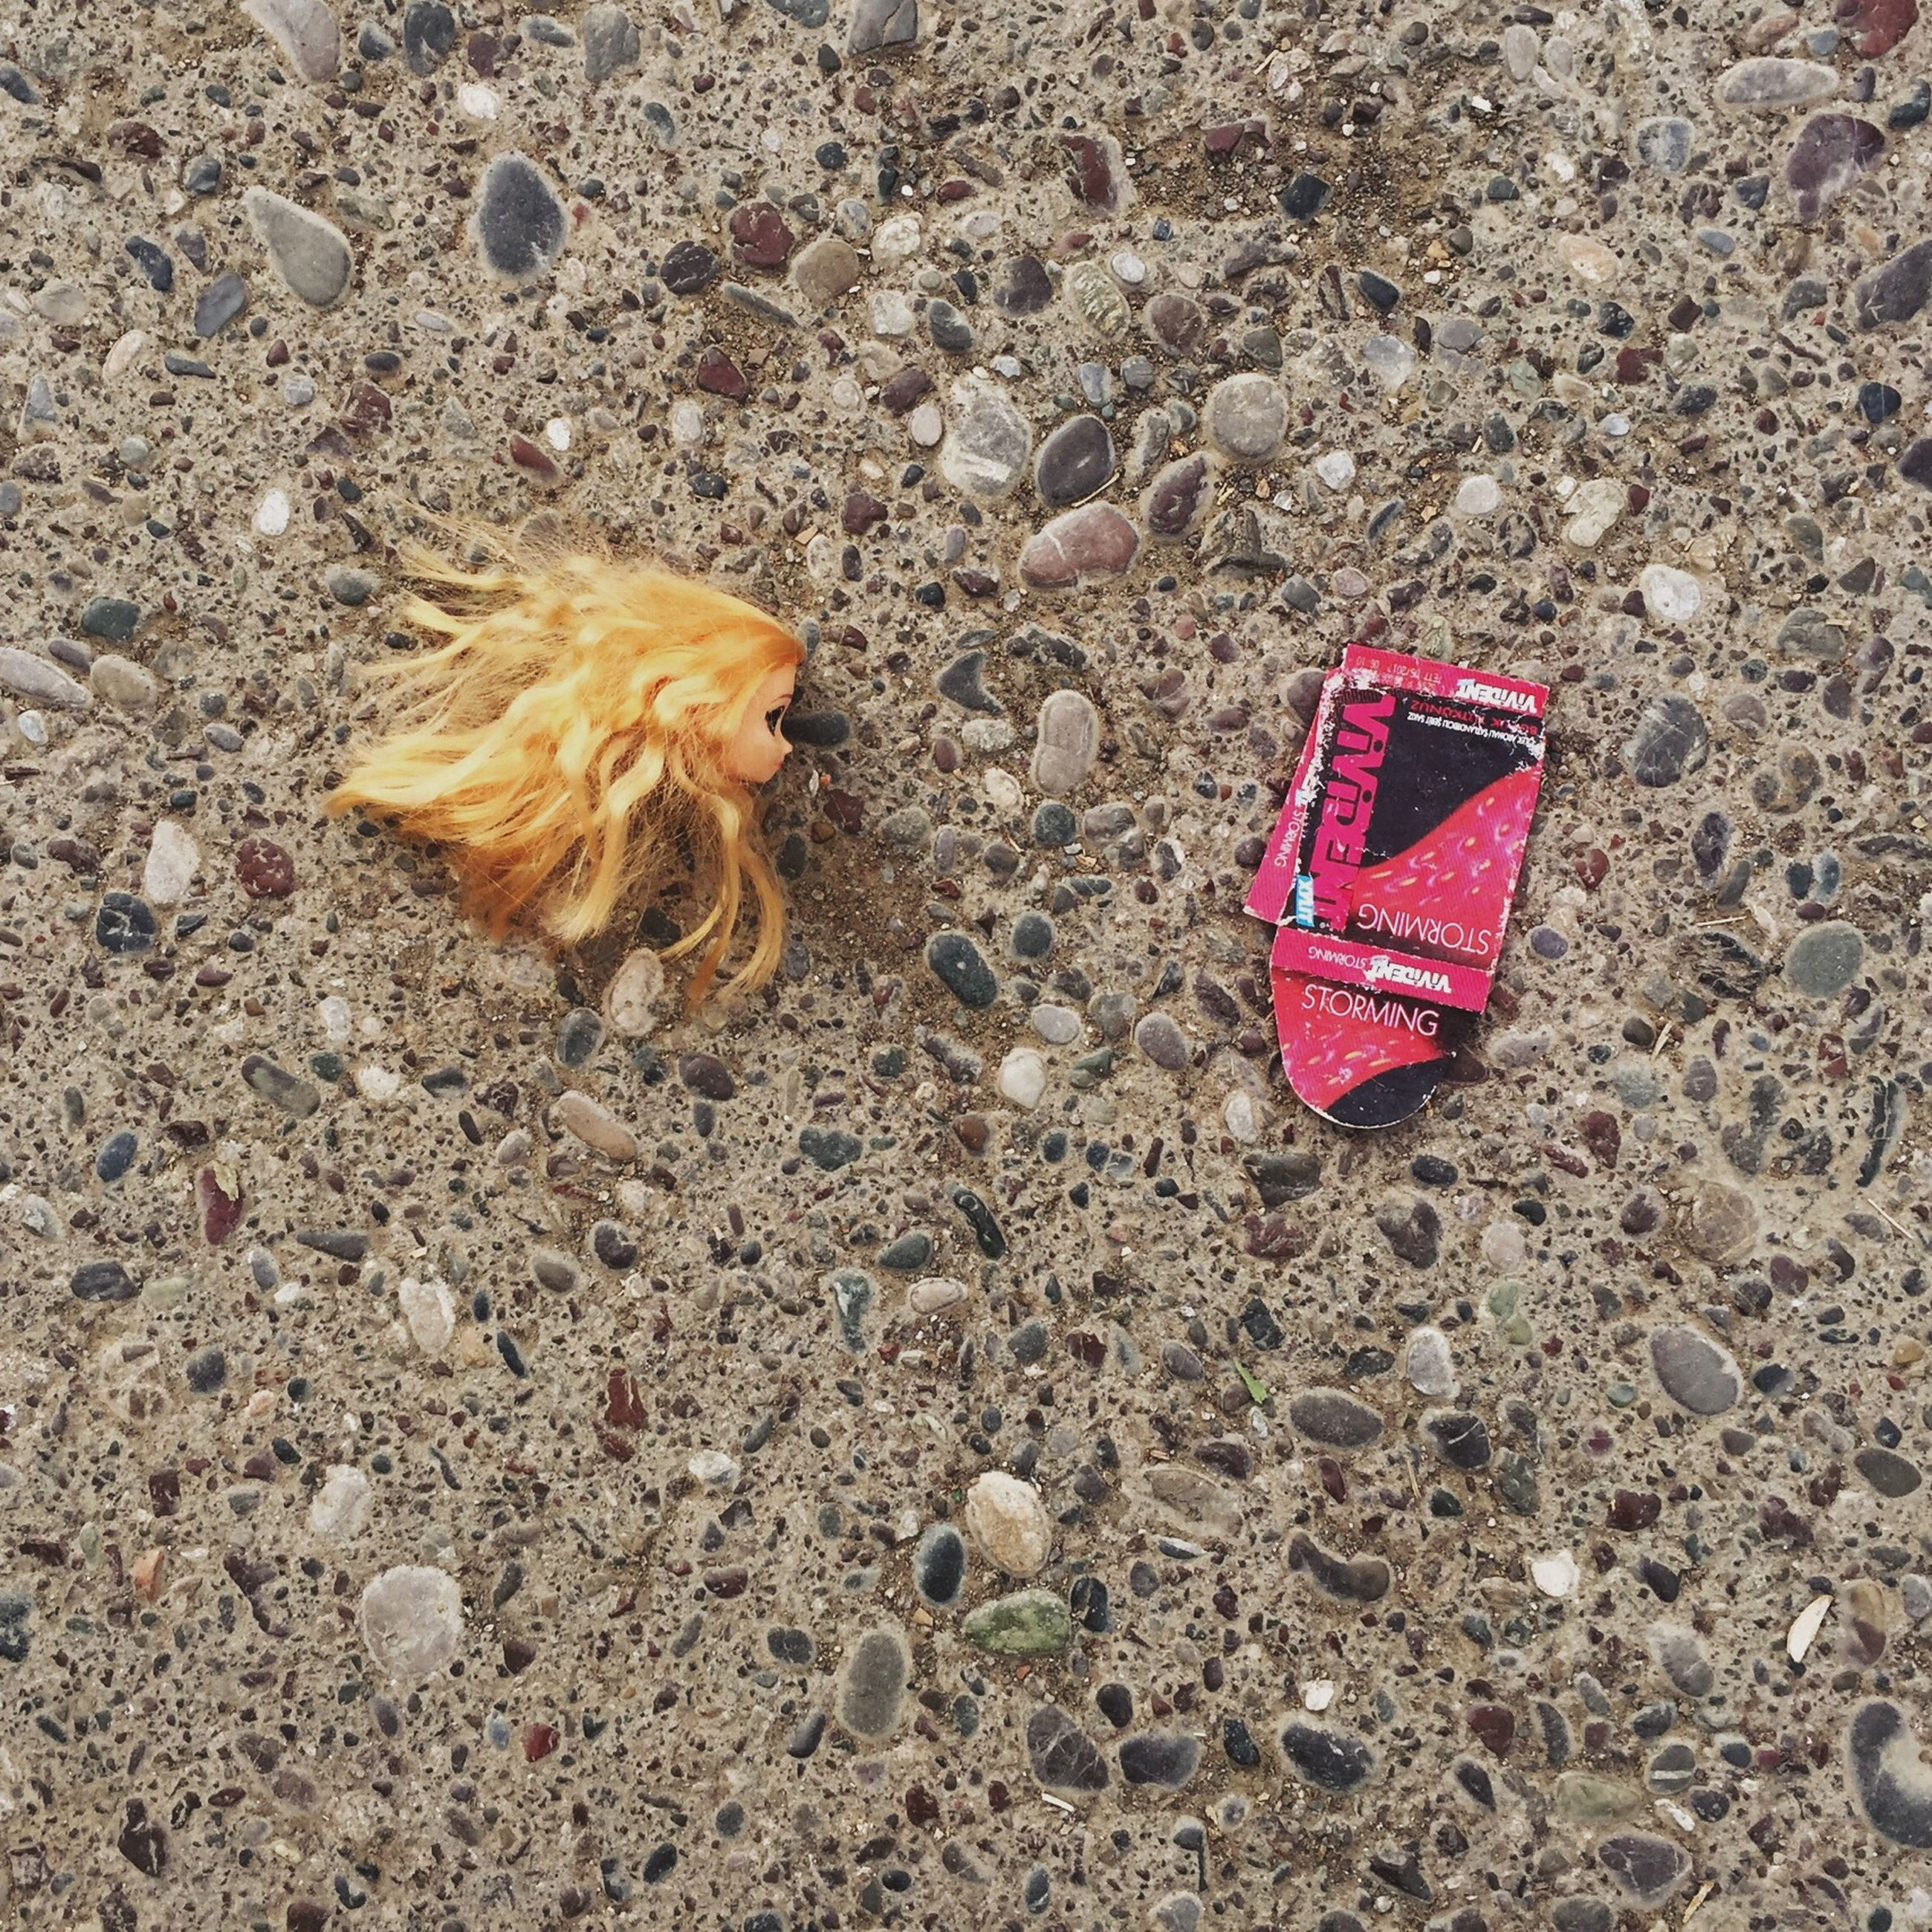 high angle view, still life, ground, leaf, single object, close-up, asphalt, no people, abandoned, fallen, dry, autumn, day, street, directly above, red, outdoors, messy, field, heart shape